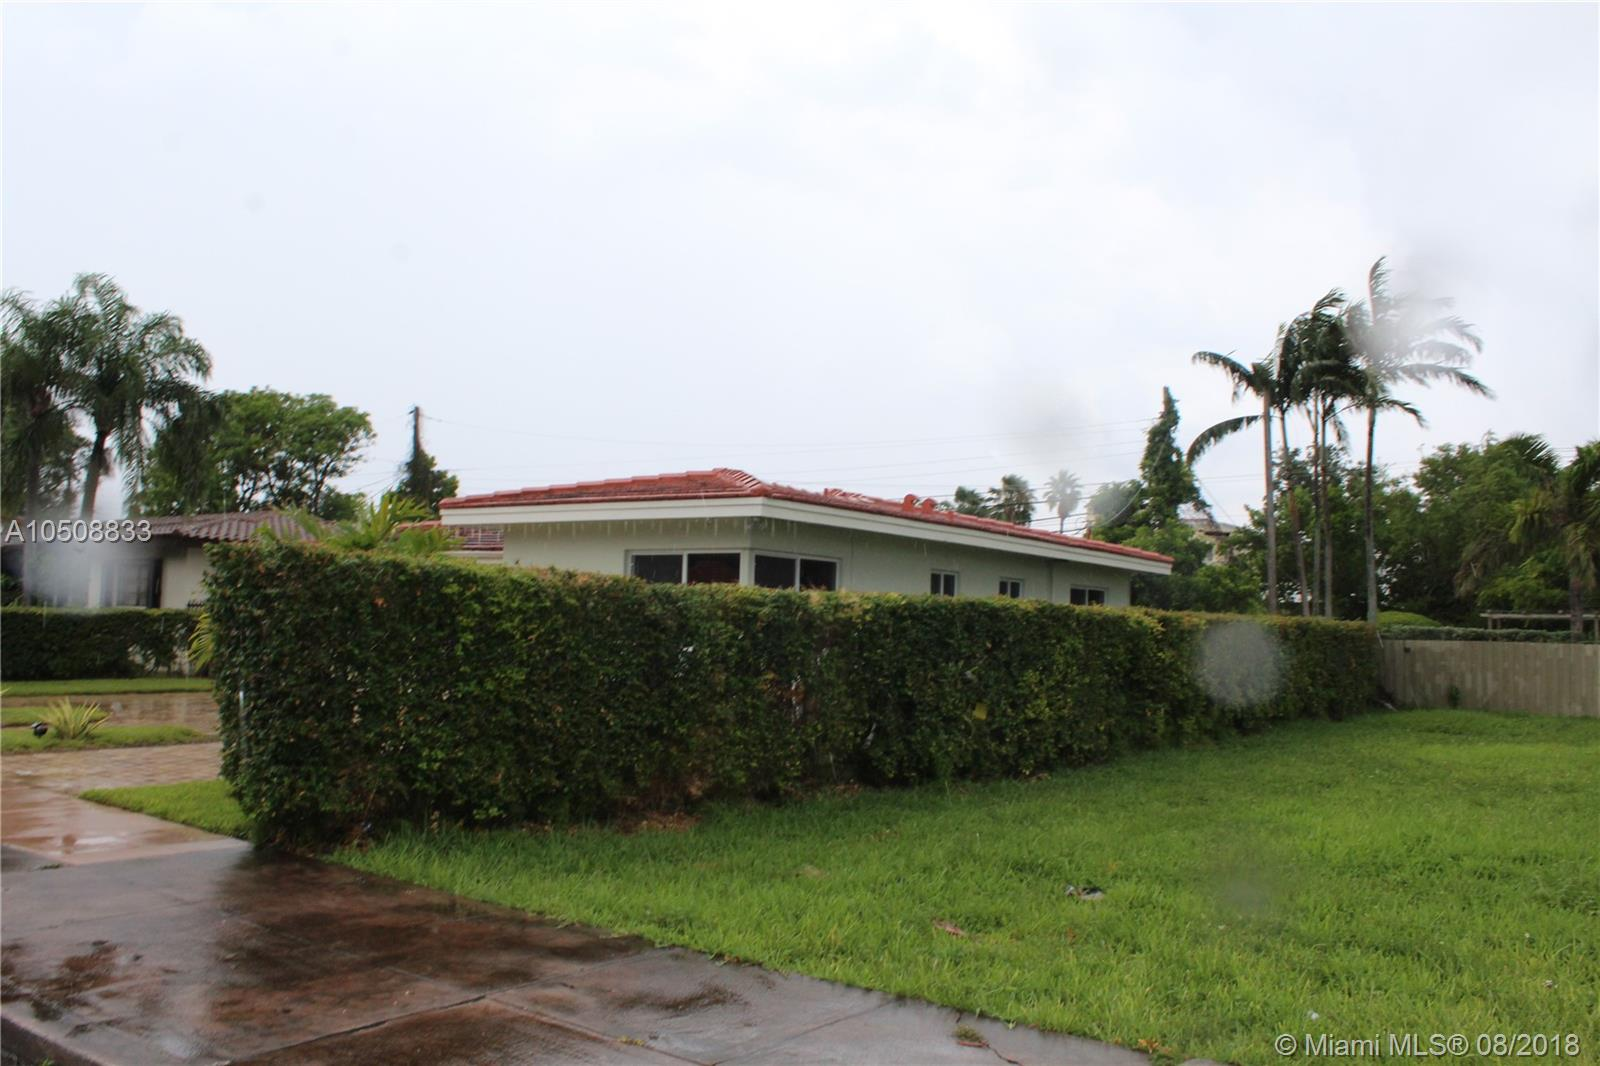 142 Sw 37th Ave, Coral Gables FL, 33134